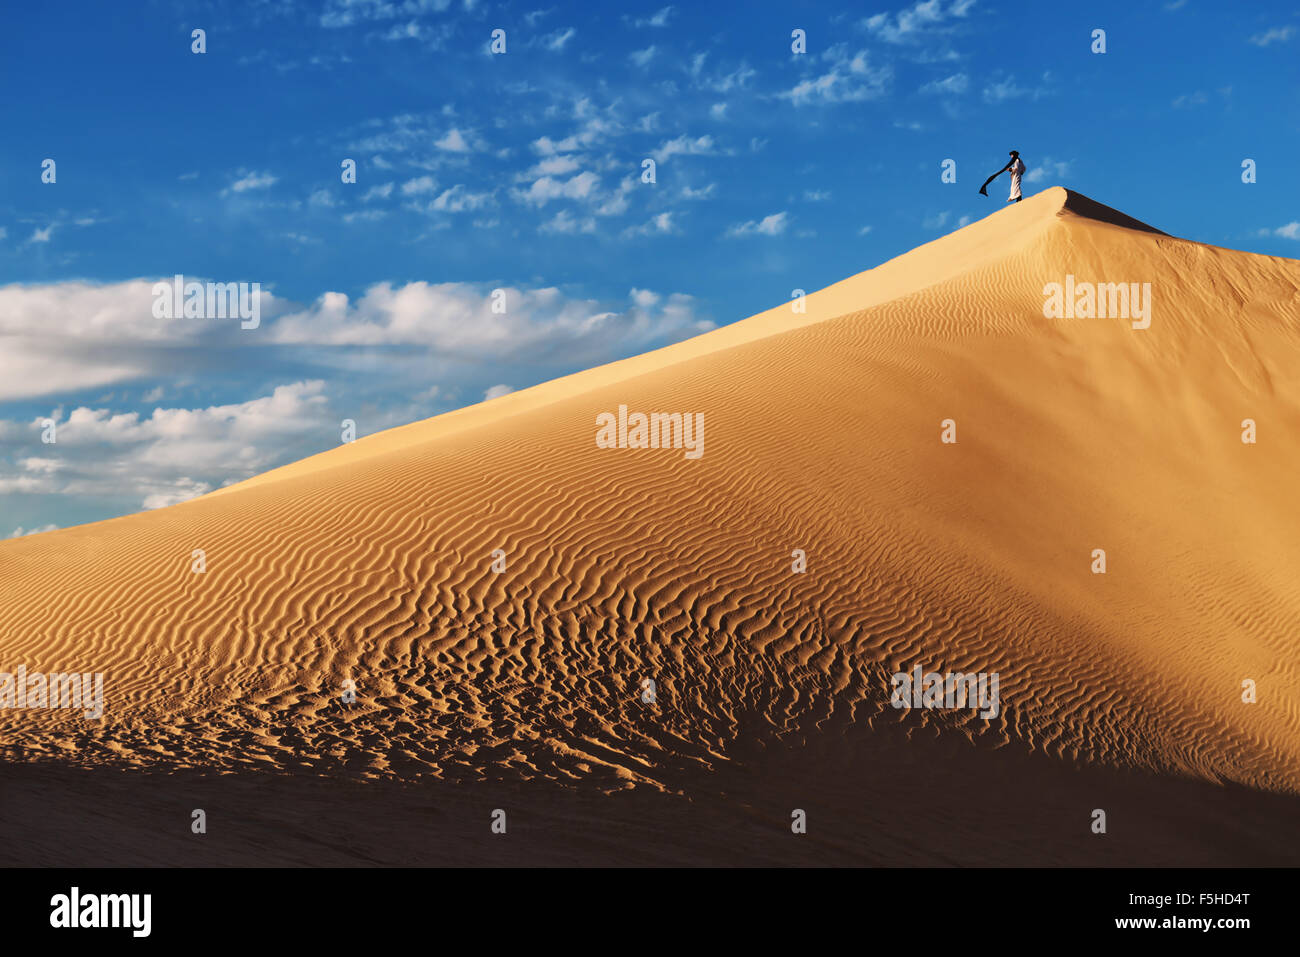 A traditional dressed Moroccan man stands on a sand dune against a cloudy blue sky. - Stock Image